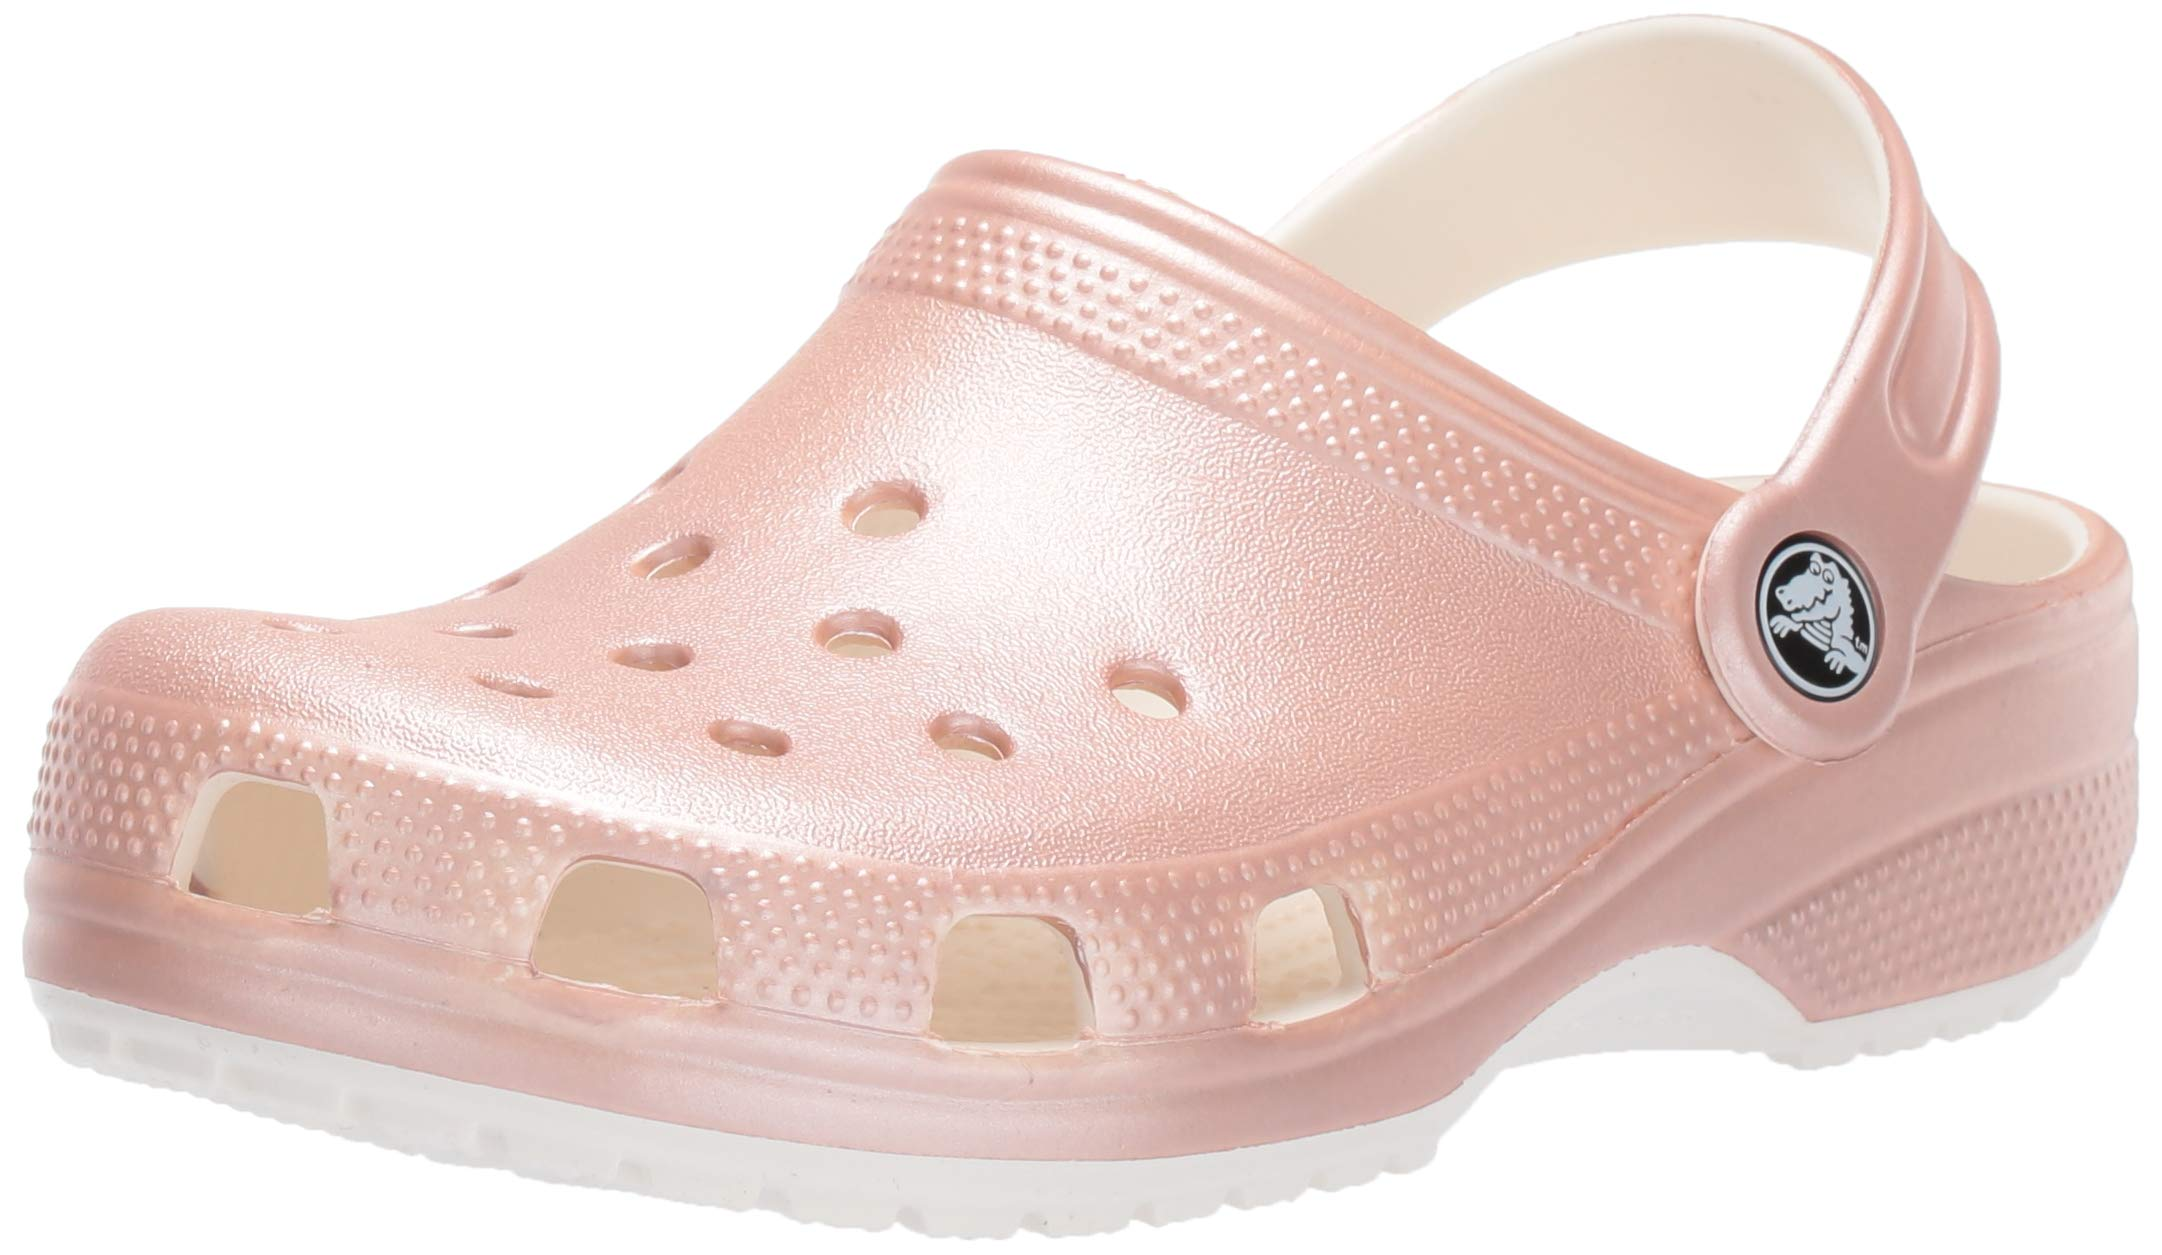 Crocs Classic Metallic Clog, Rose Gold, 3 M US Little Kid by Crocs